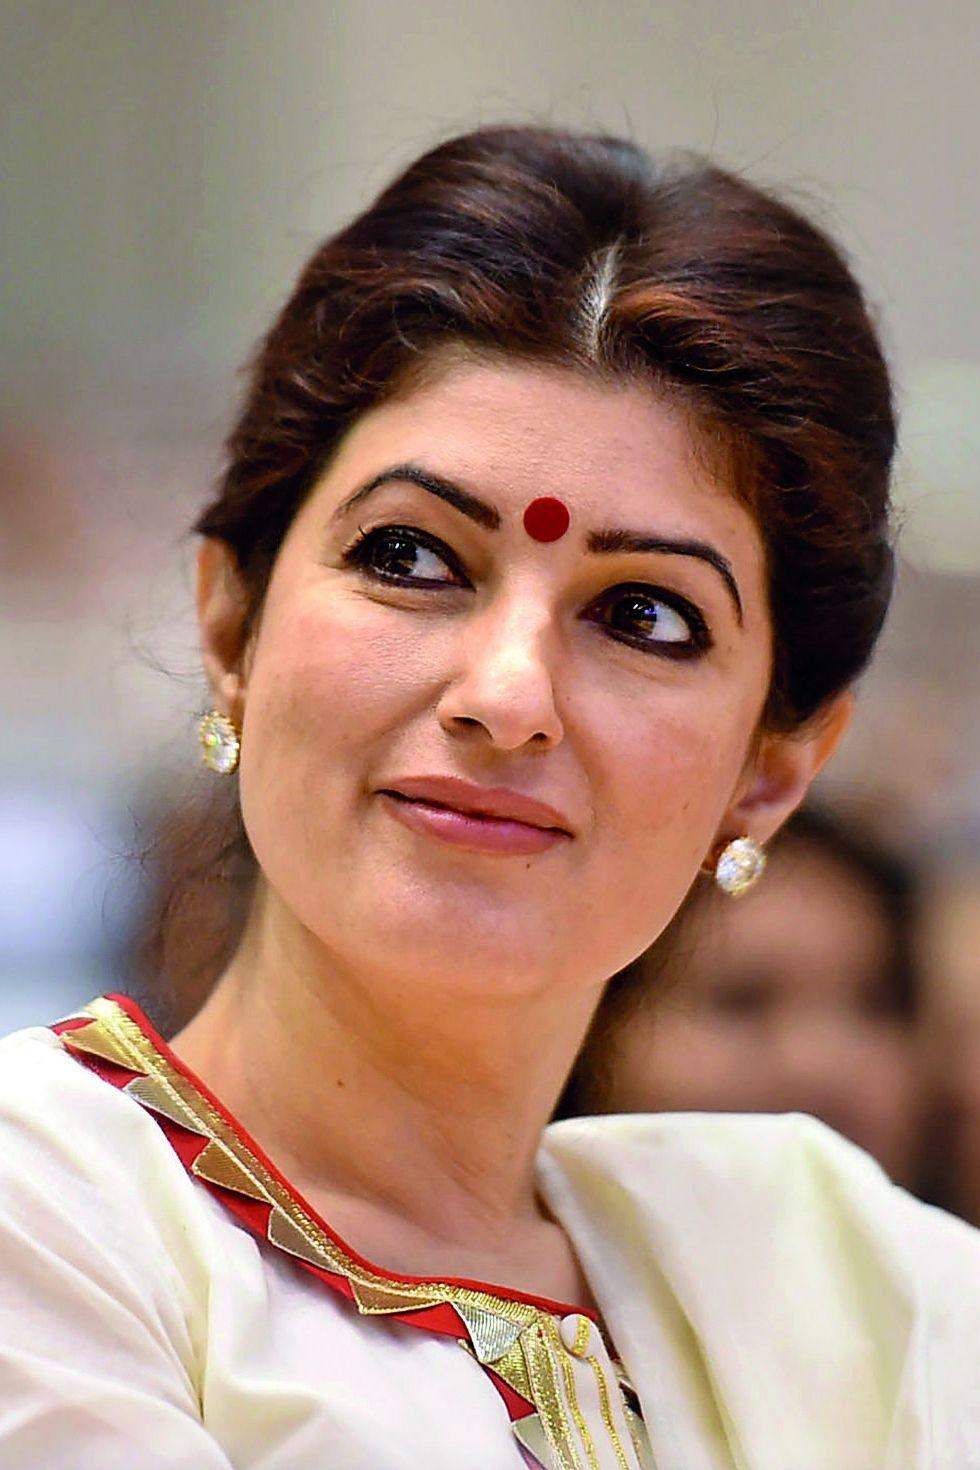 Discussion on this topic: Ryza Cenon (b. 1987), twinkle-khanna/